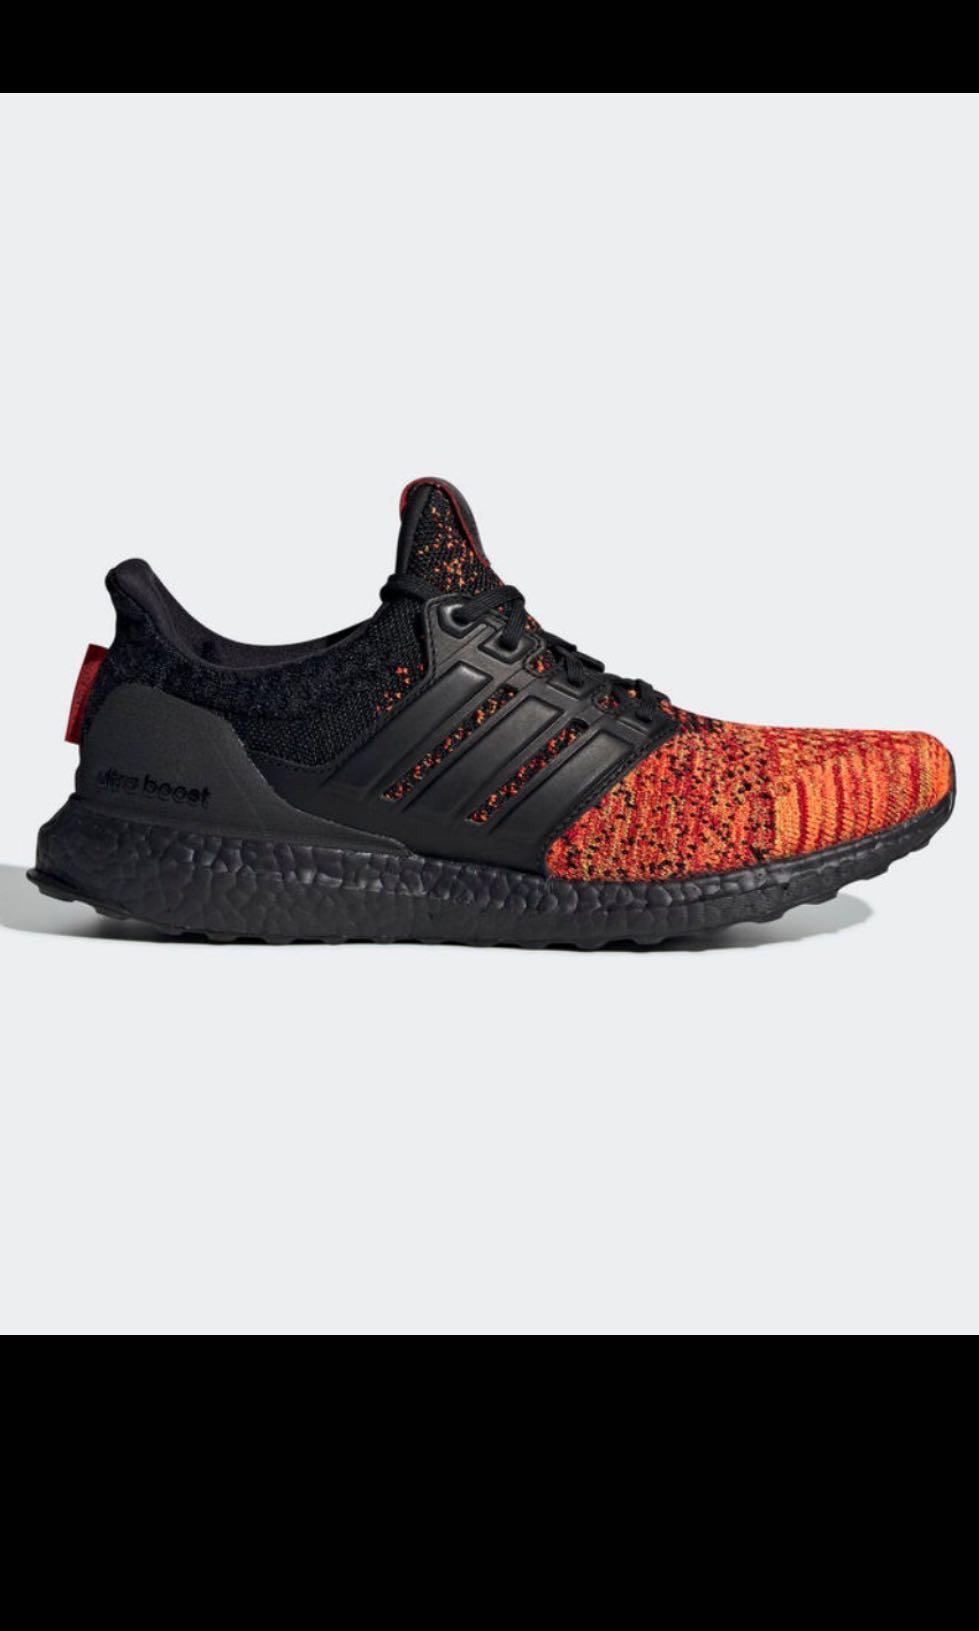 dfea29903 Adidas Ultra Boost X Game of Thrones throne GOT US9.5 (yeezy boost)  ultraboost